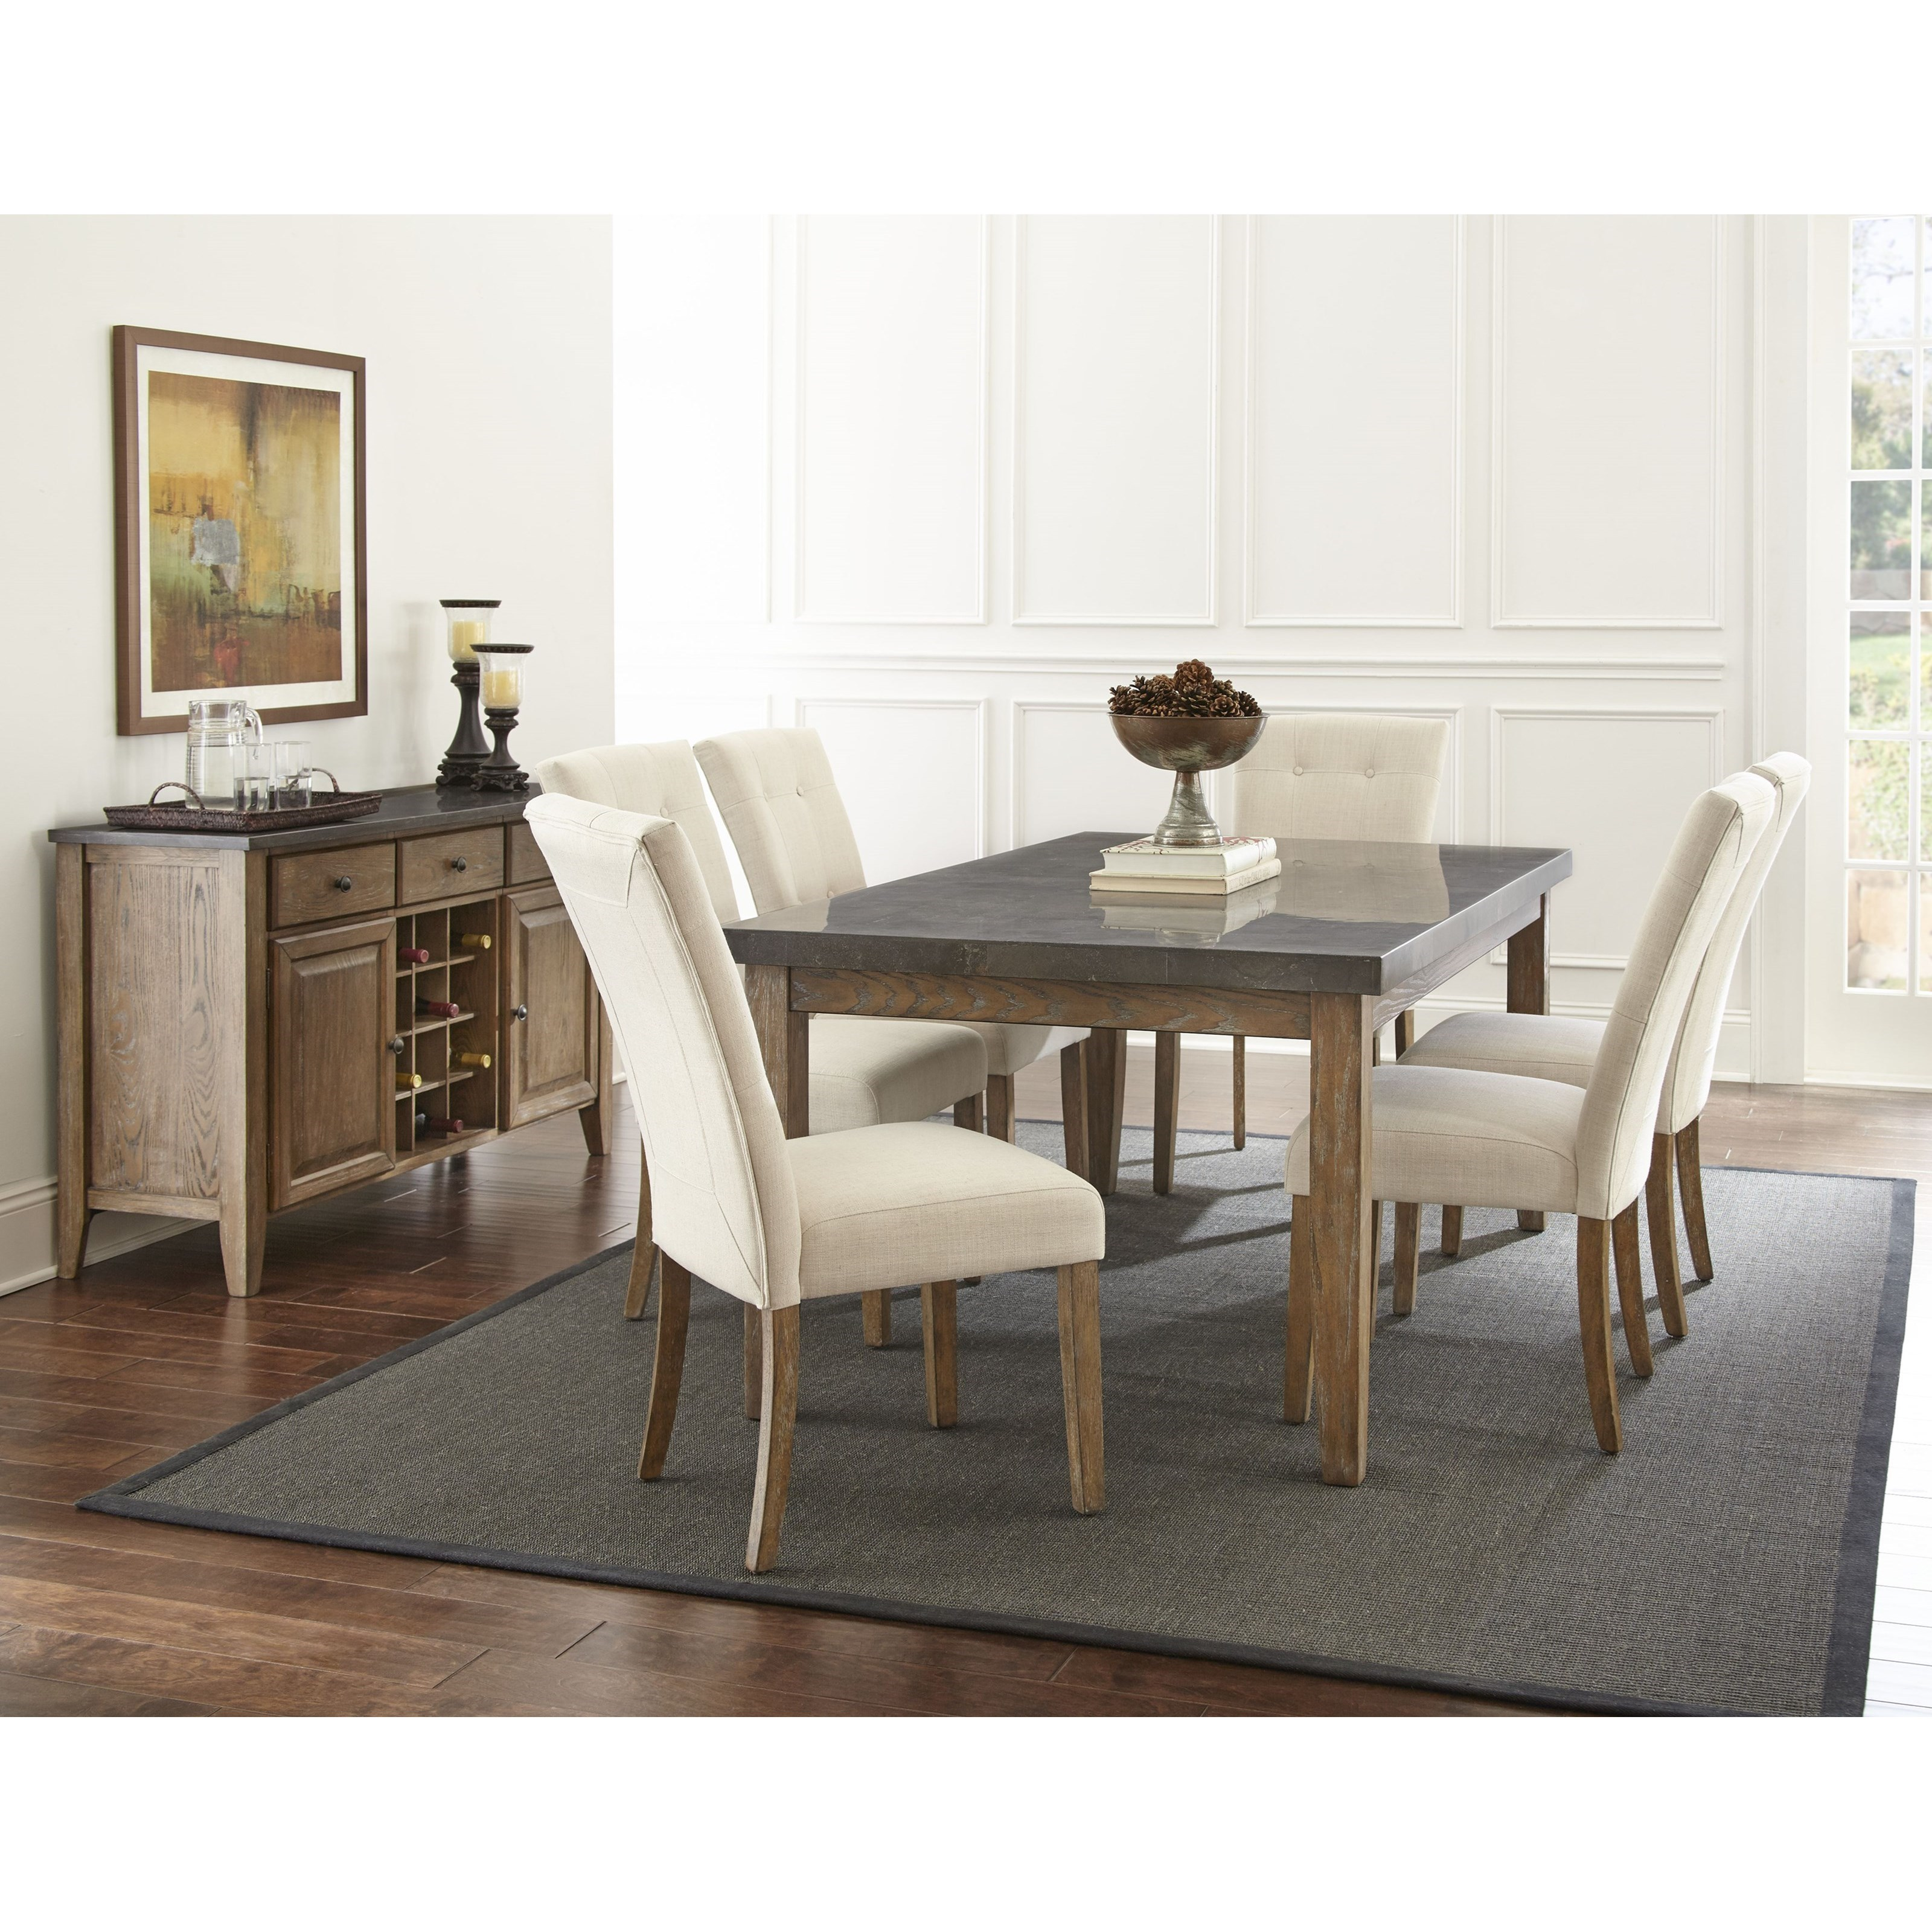 Dazzelton Dining Room Table: Star Debby Transitional Rectangular Dining Table With